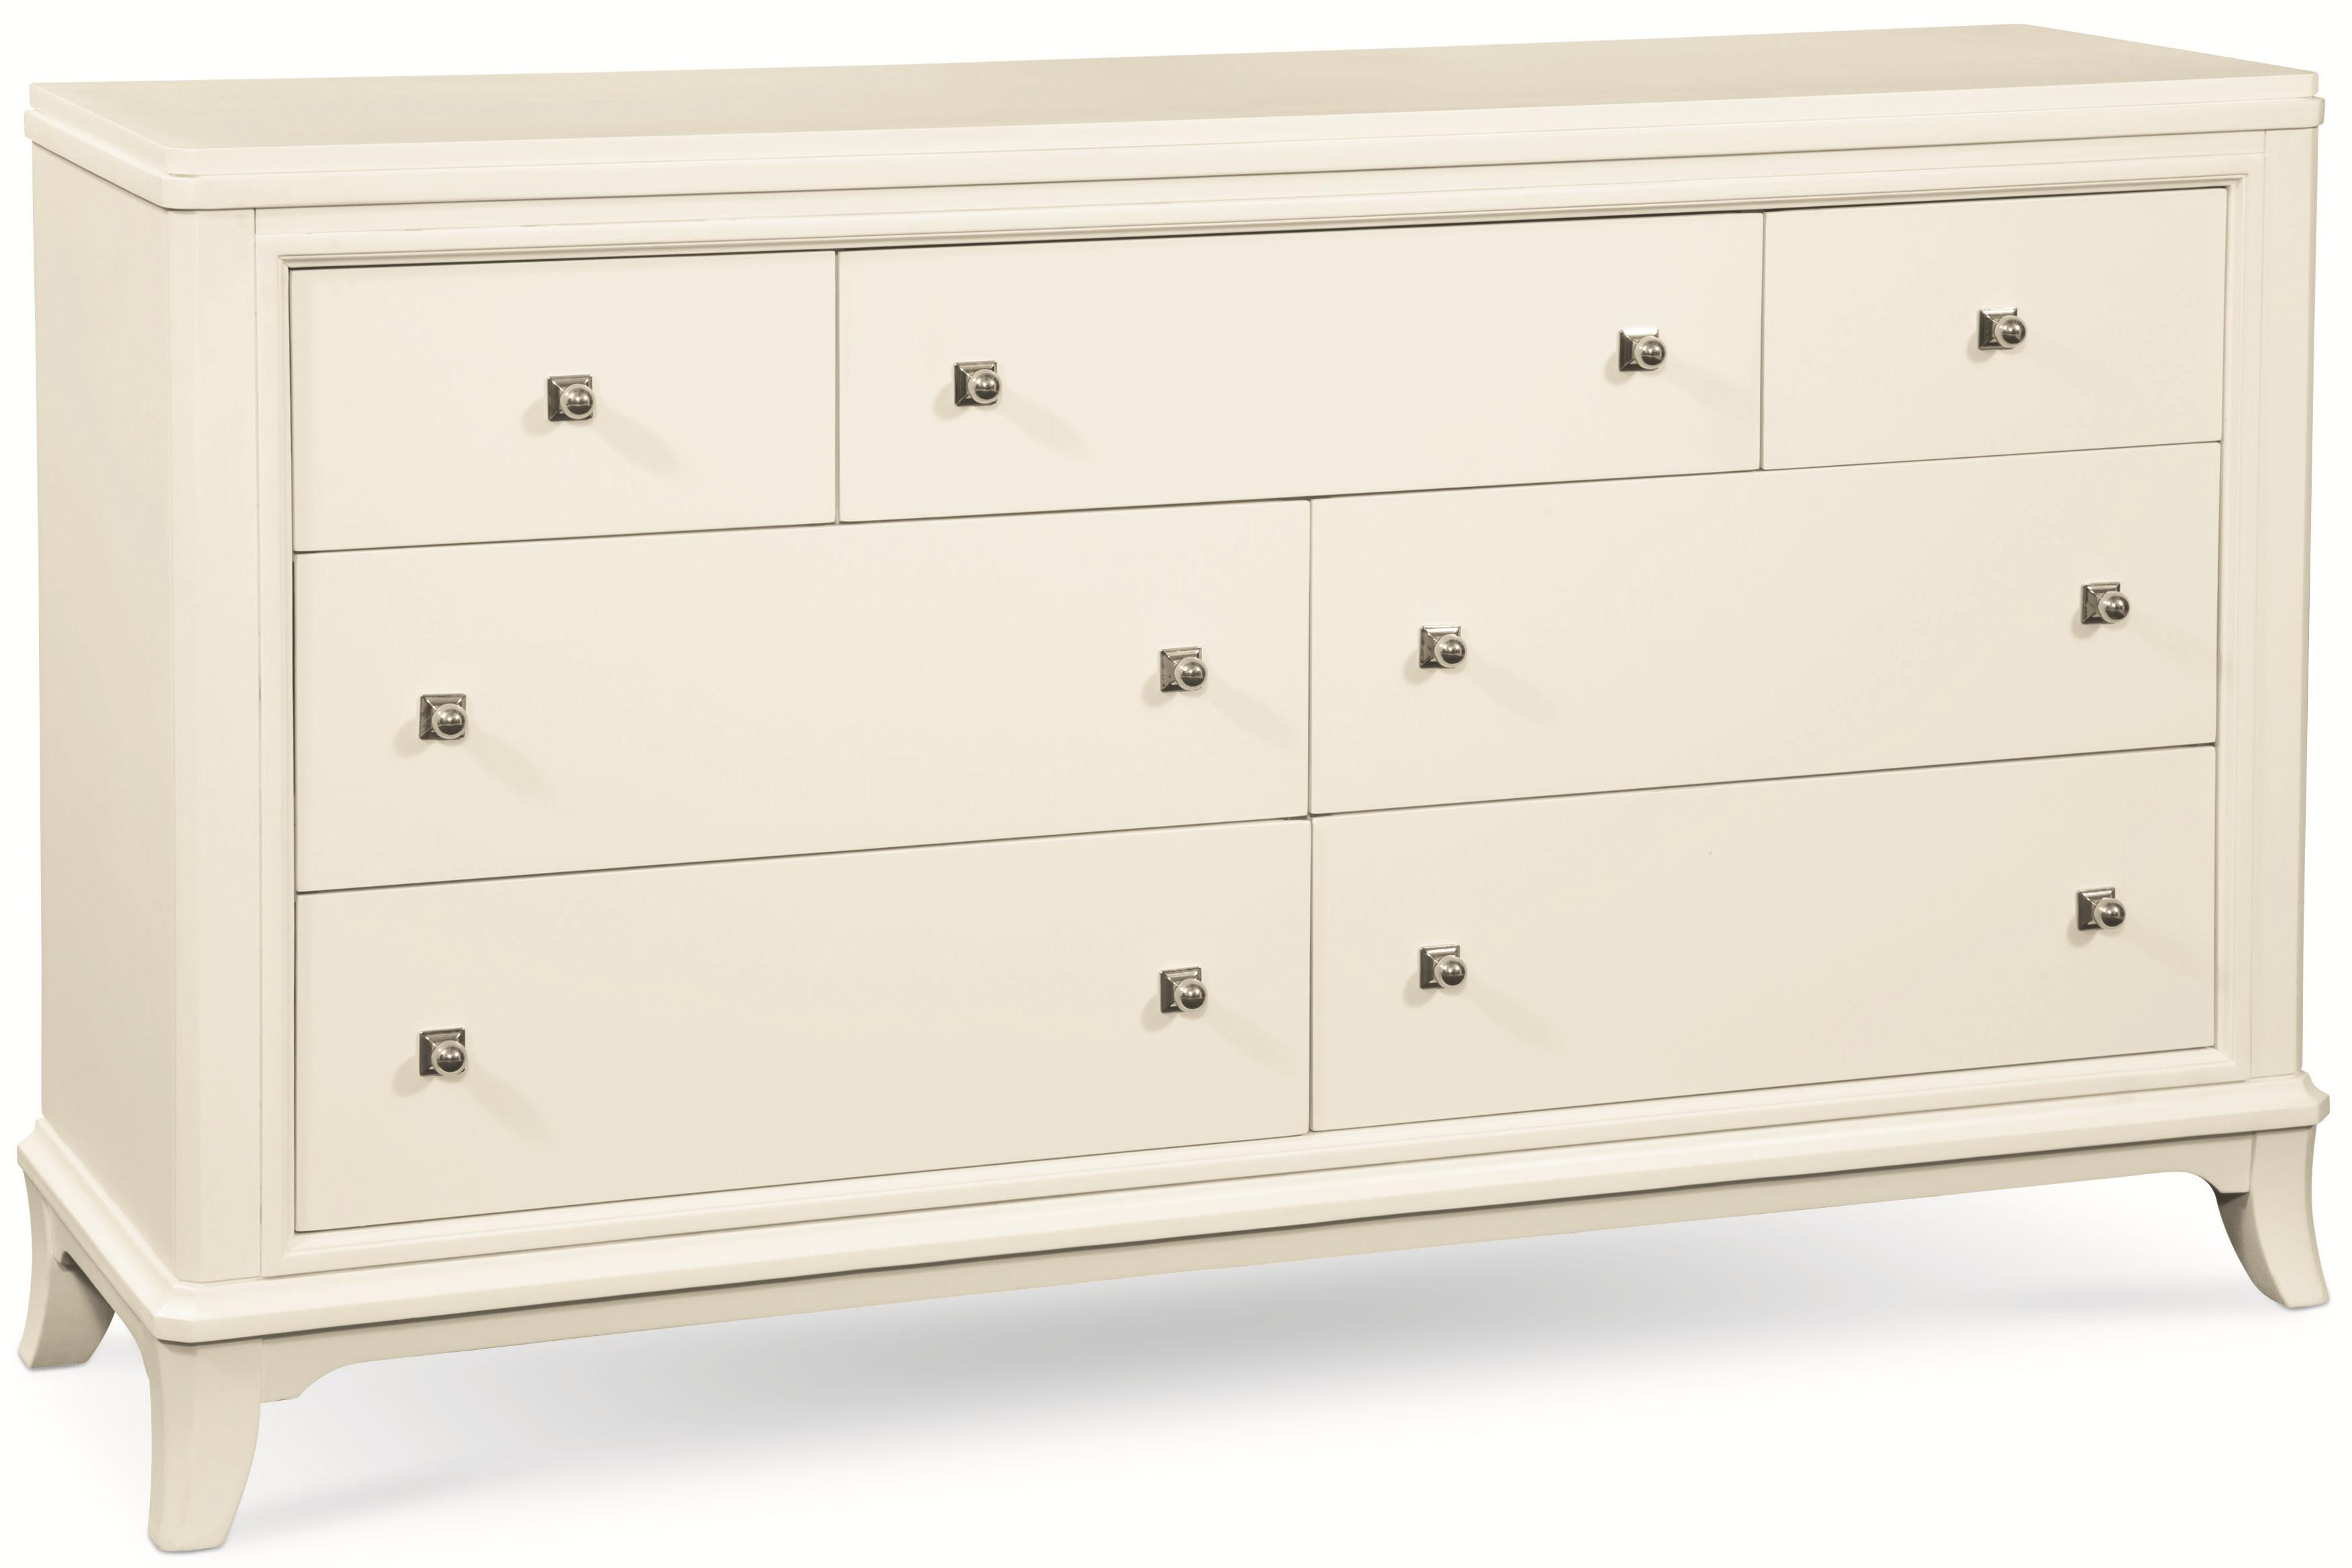 Thomasville® Manuscript Dresser - Item Number: 82915-125